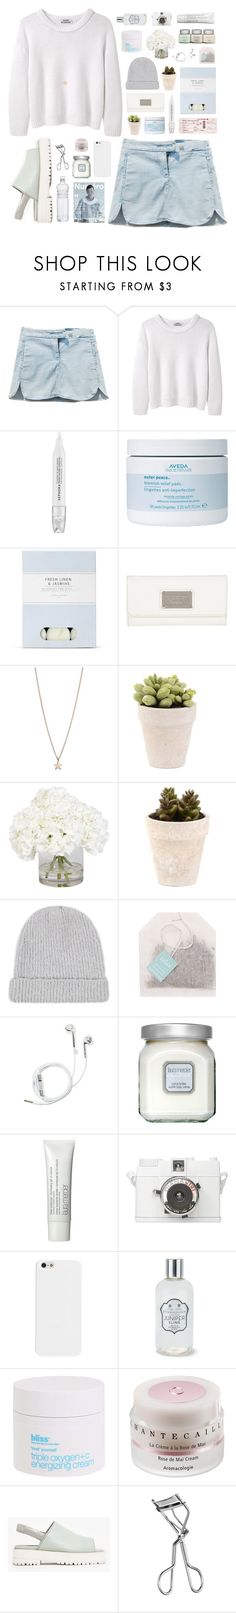 """""""MILD IVY"""" by penitdown ❤ liked on Polyvore featuring Acne Studios, Sephora Collection, Aveda, Laura Ashley, Marc by Marc Jacobs, Minor Obsessions, Ethan Allen, Paper Source, PhunkeeTree and Laura Mercier"""